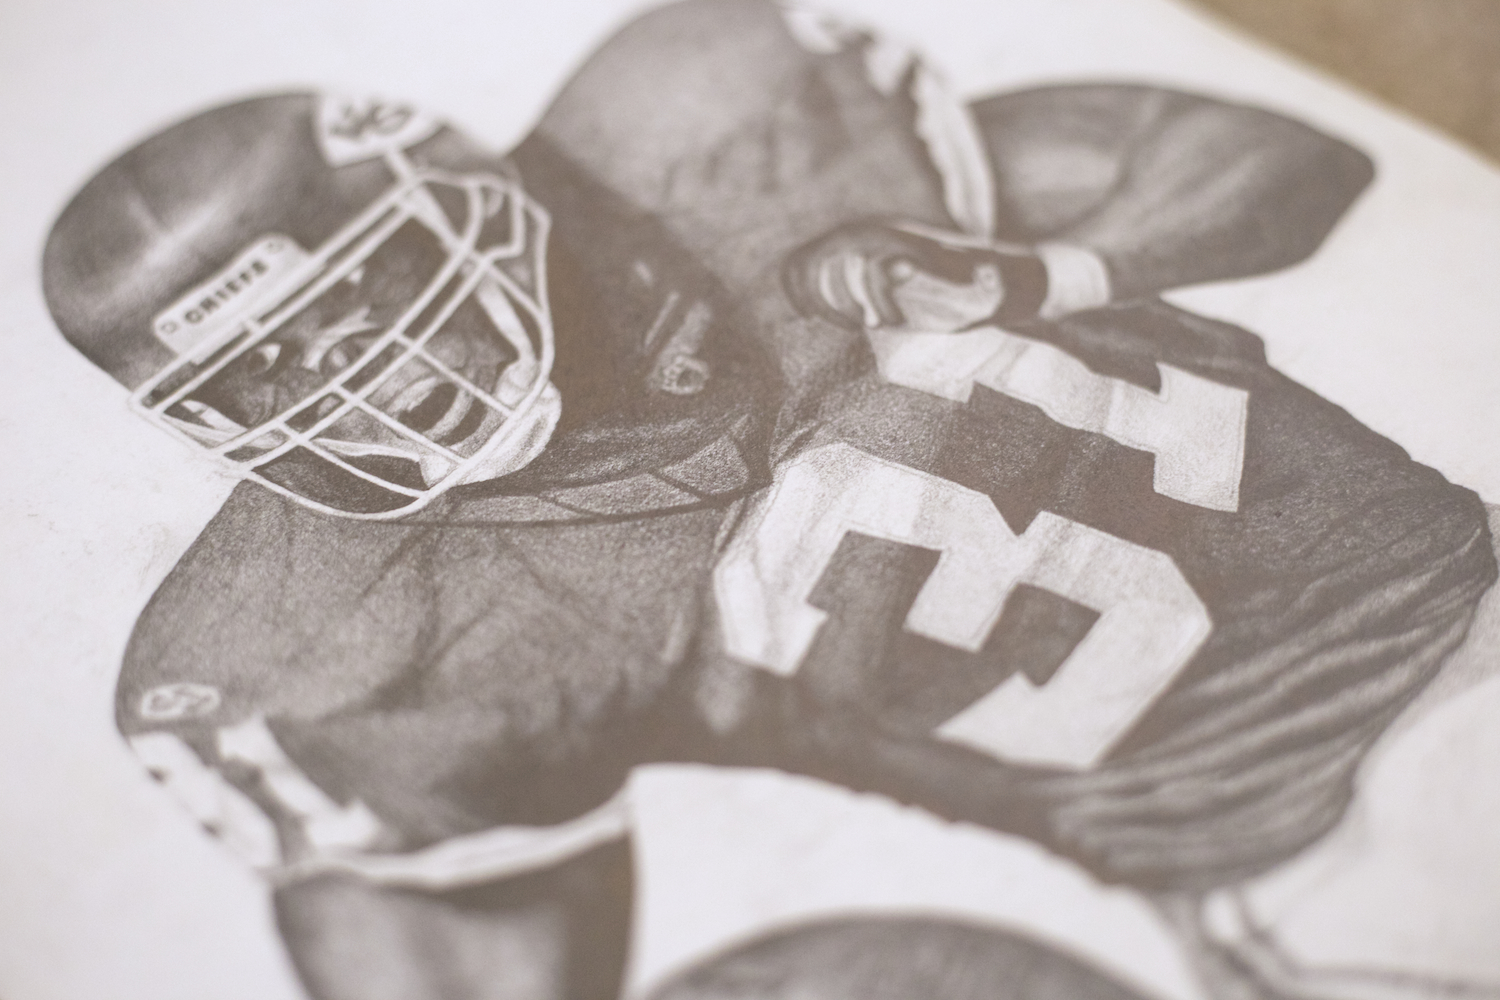 sketch-artist-for-hire-phoenix-az-pencil-drawing-of-priest-holmes-nfl-football-artwork